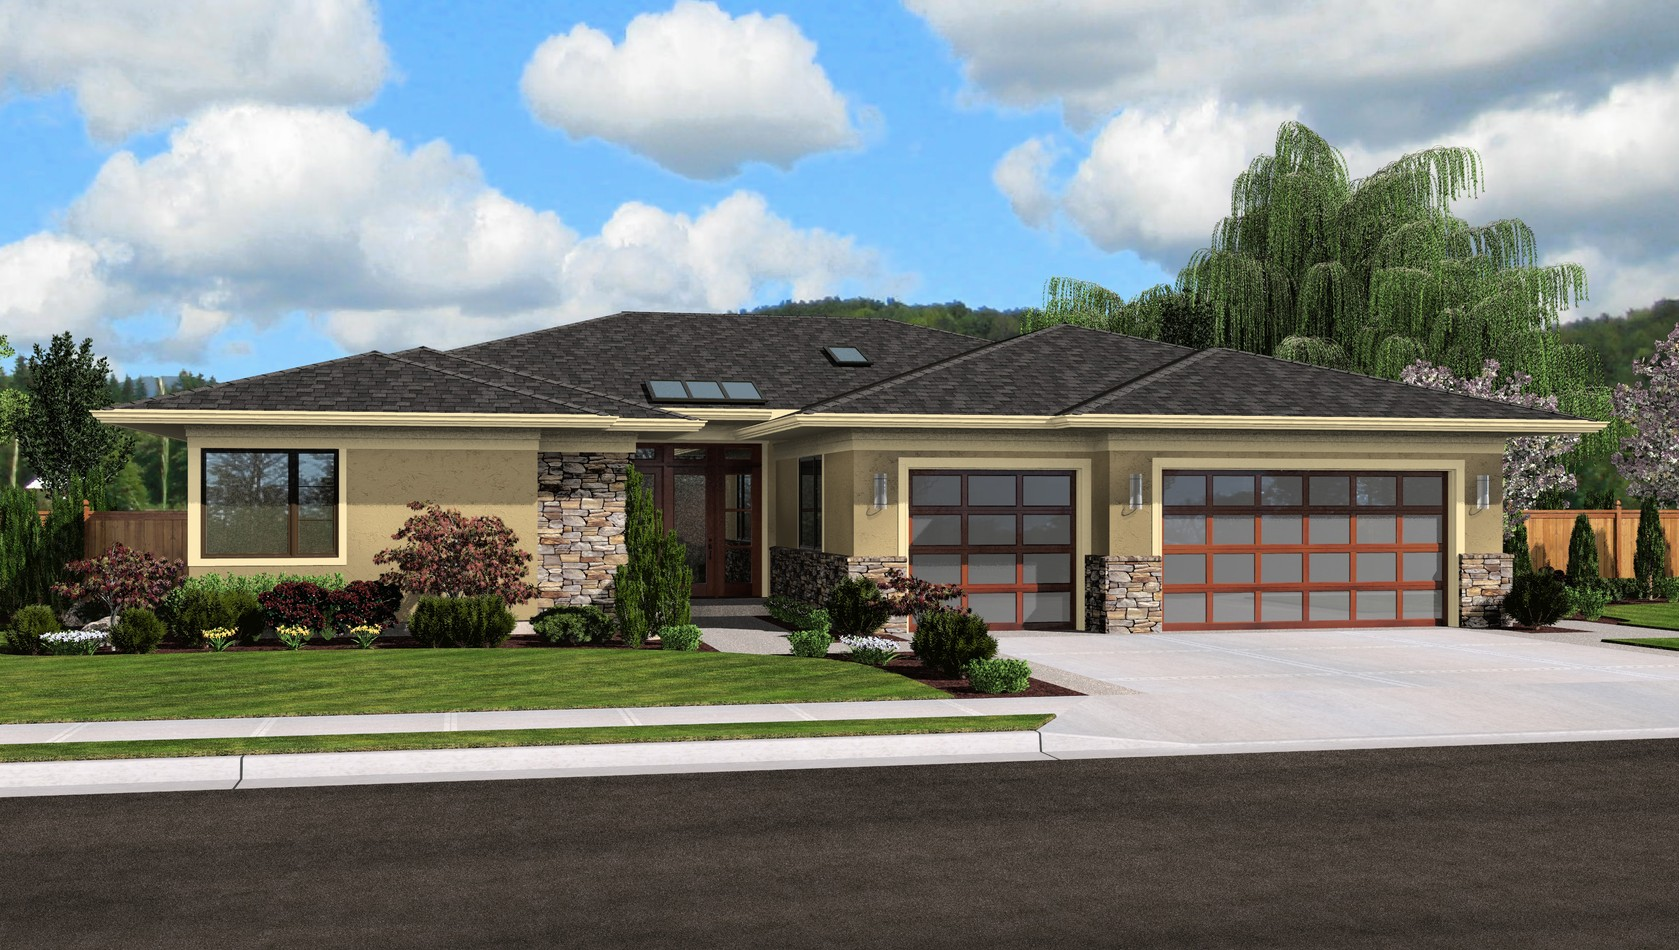 House plan 1245 the riverside for Contemporary single story home designs